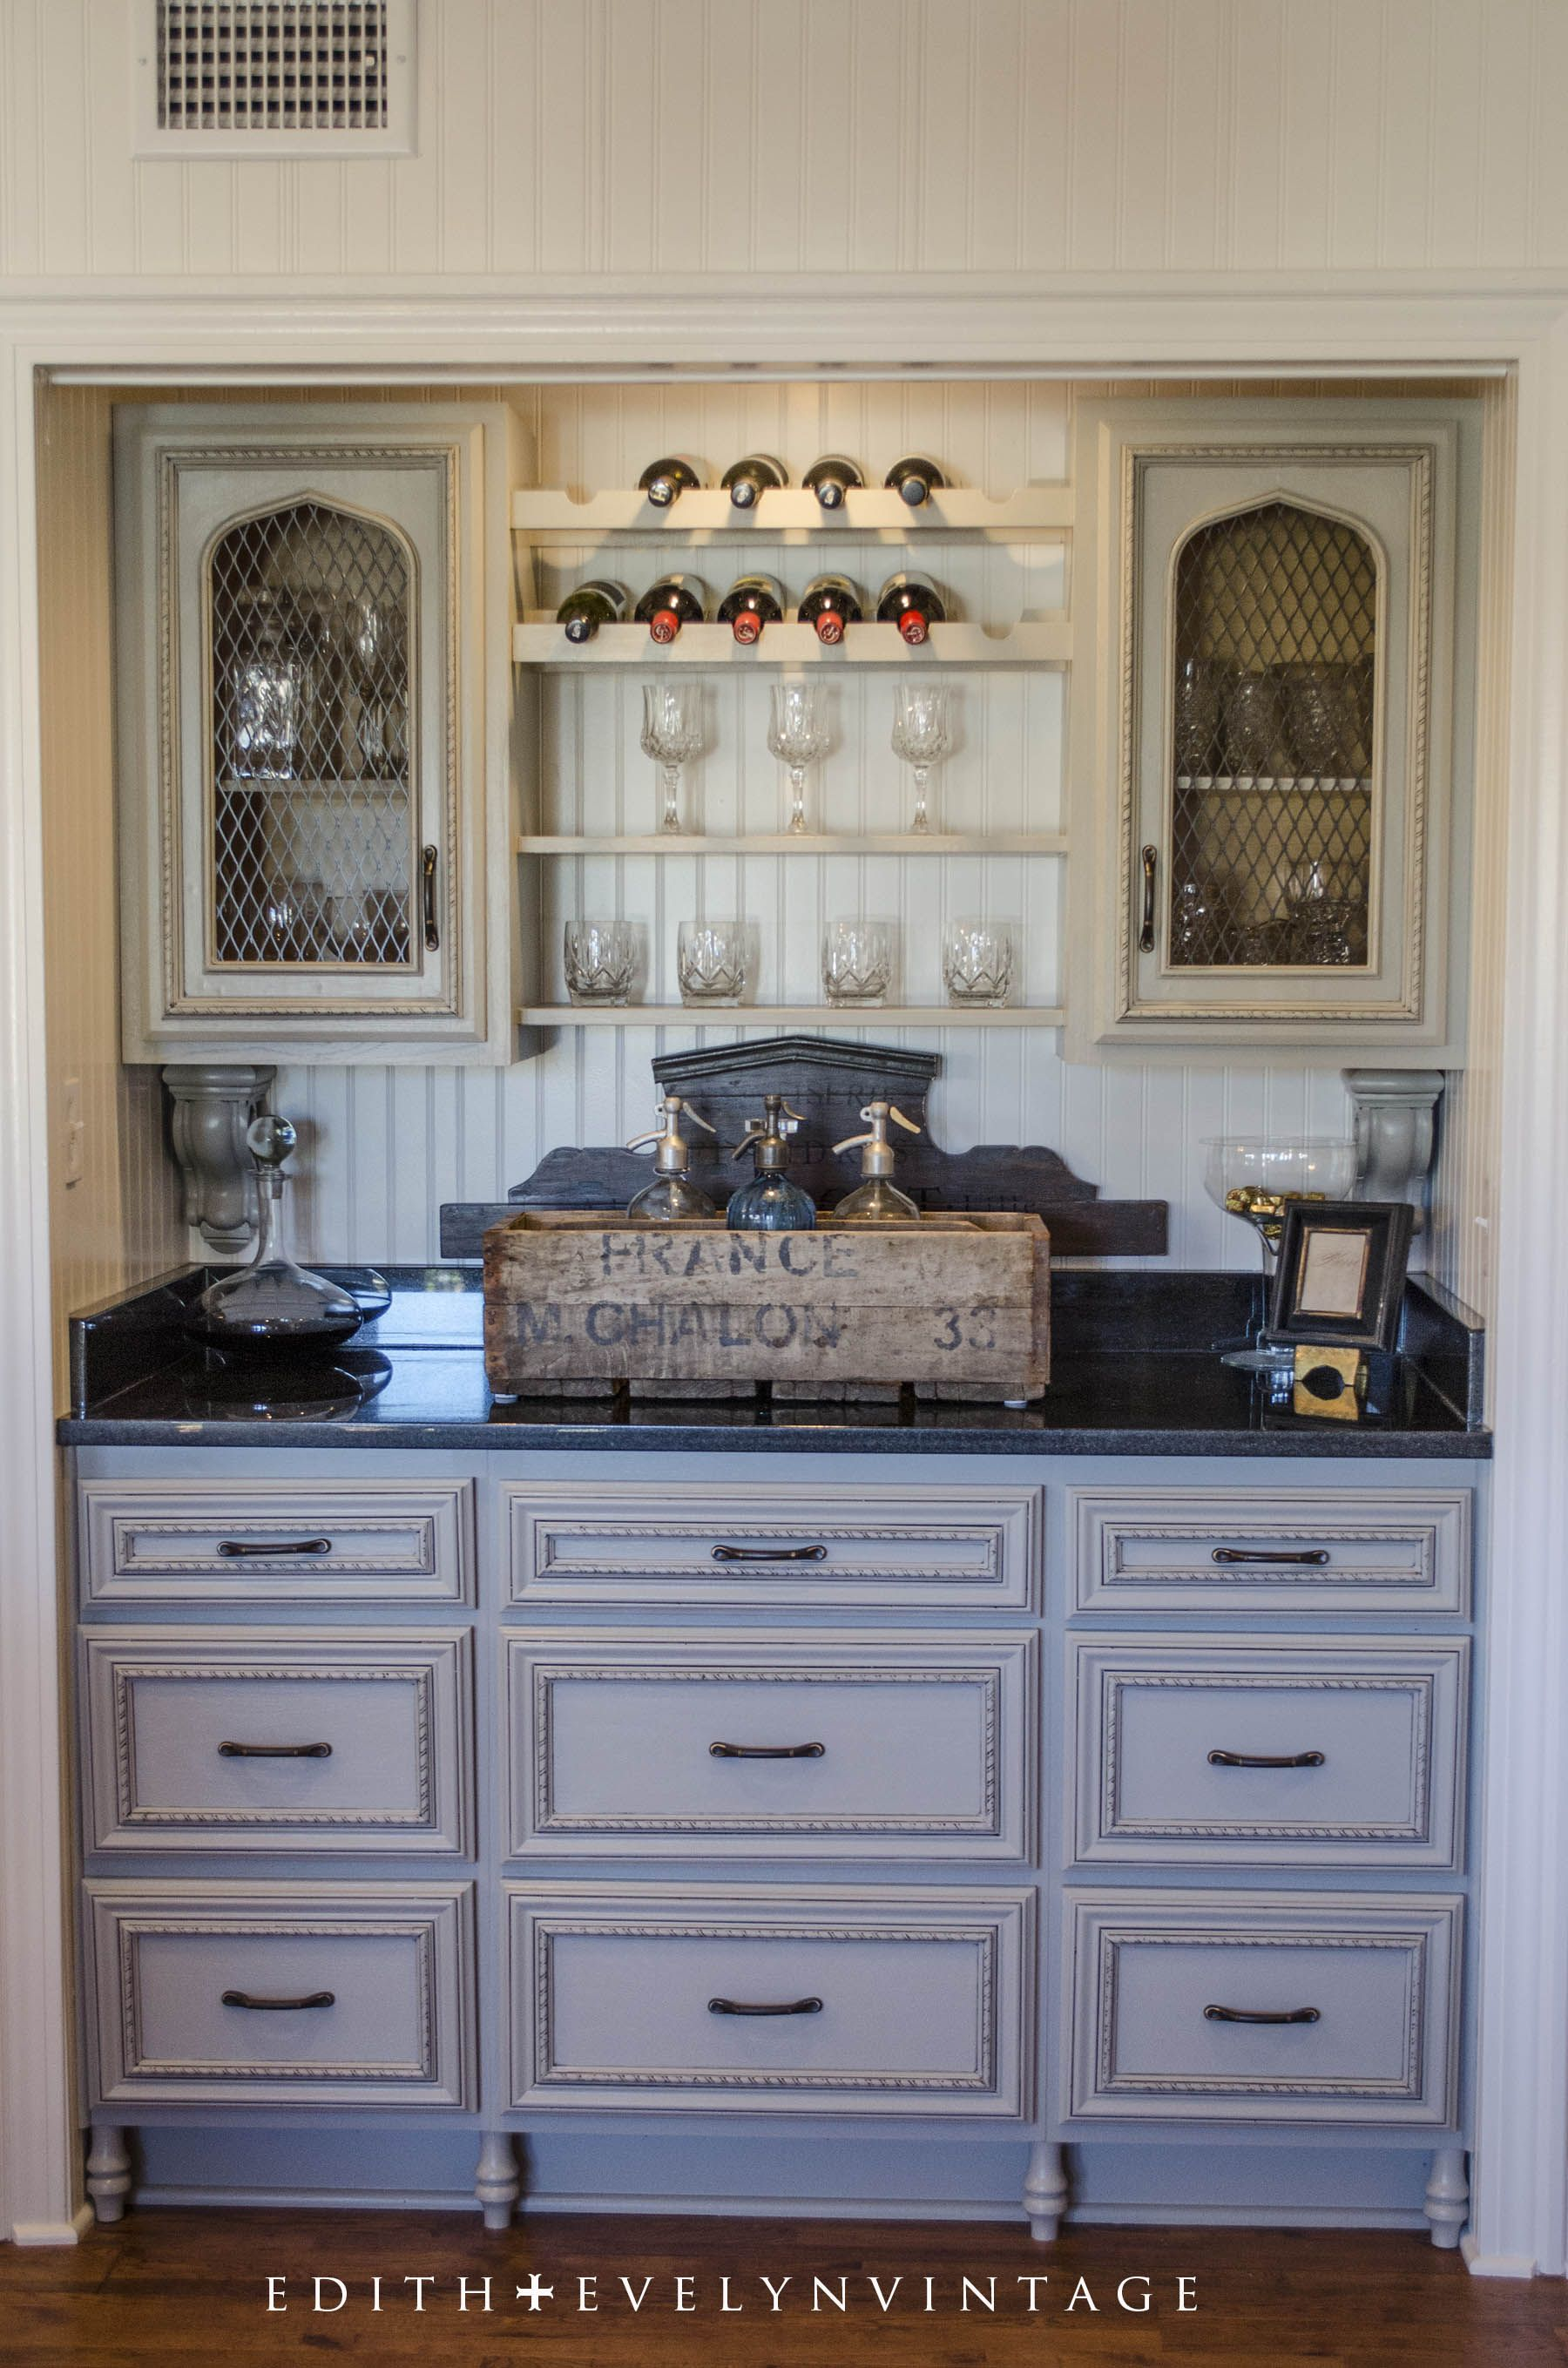 Giving Stock Cabinets From Lowe 39 S And Home Depot A Custom Look With Decorative Trim Moulding